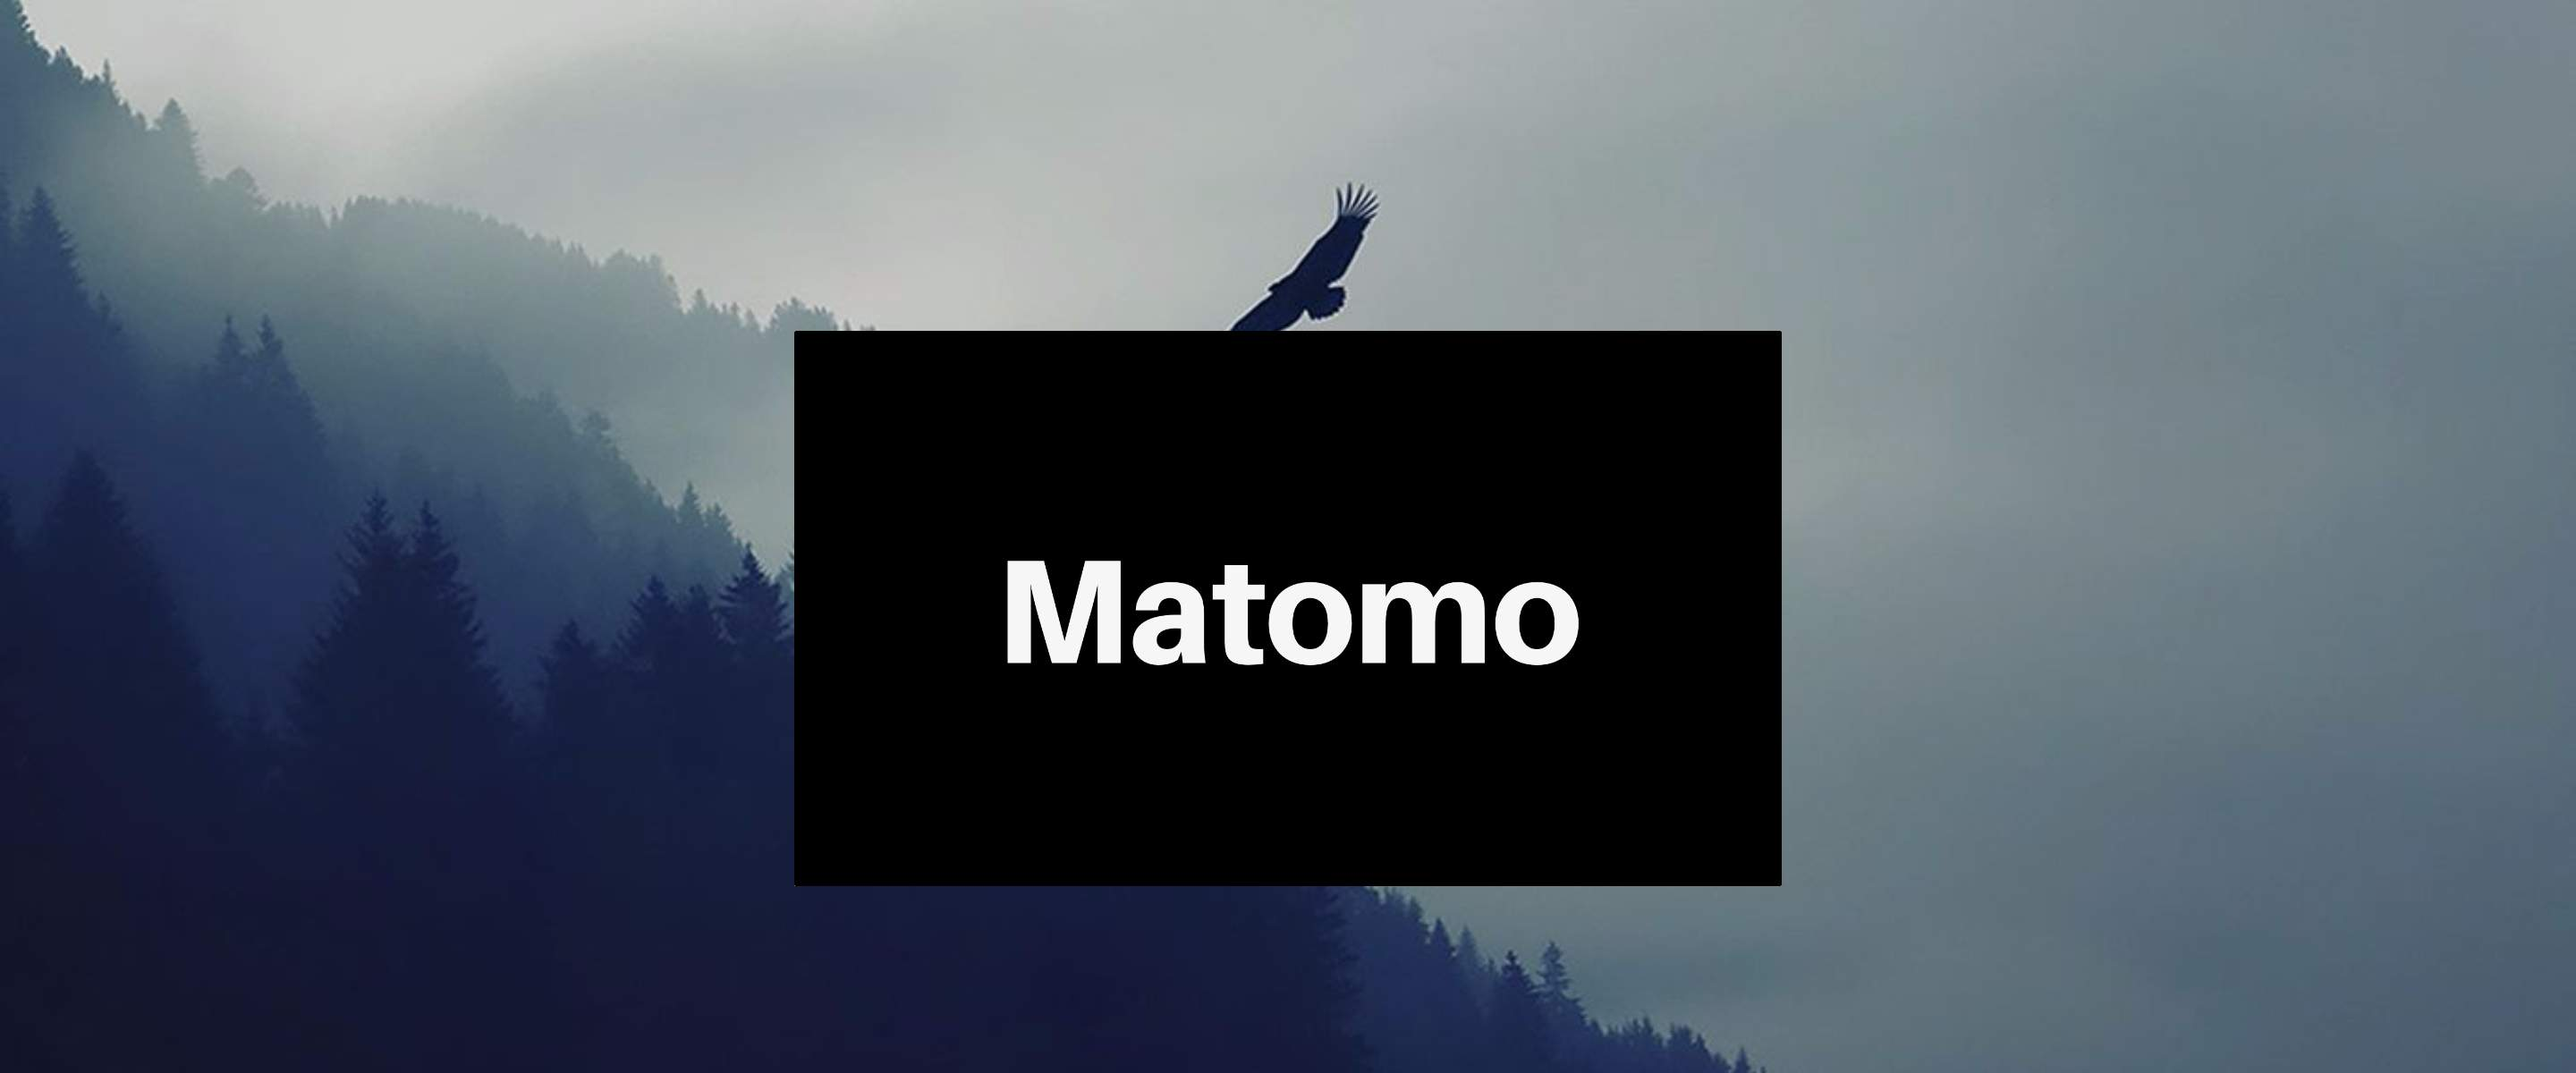 Matomo: How to install self-hosted analytics on your VPS